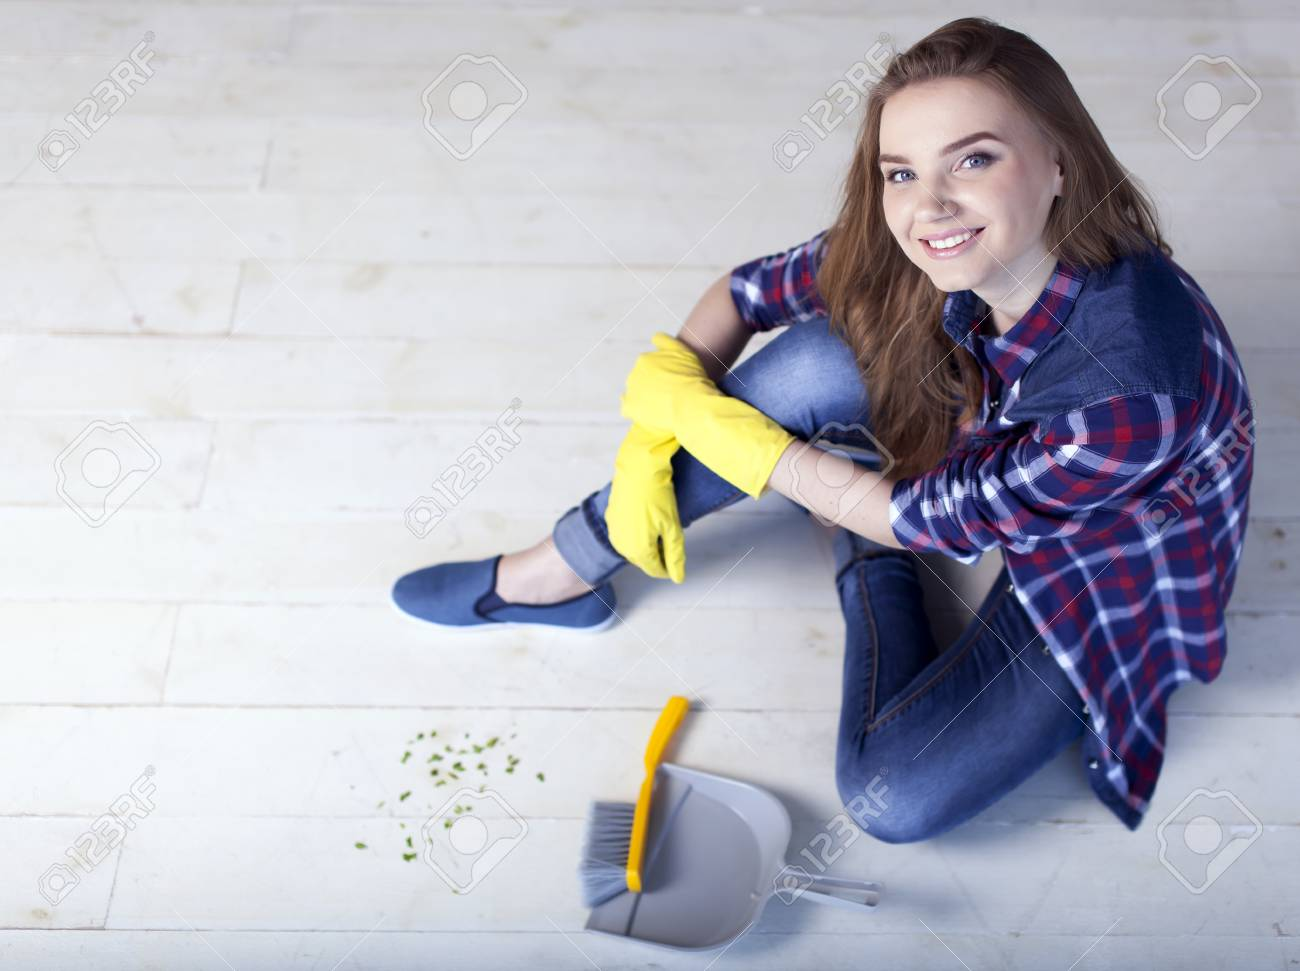 woman sit on floor with scoop for garbage and smile. - 77732566